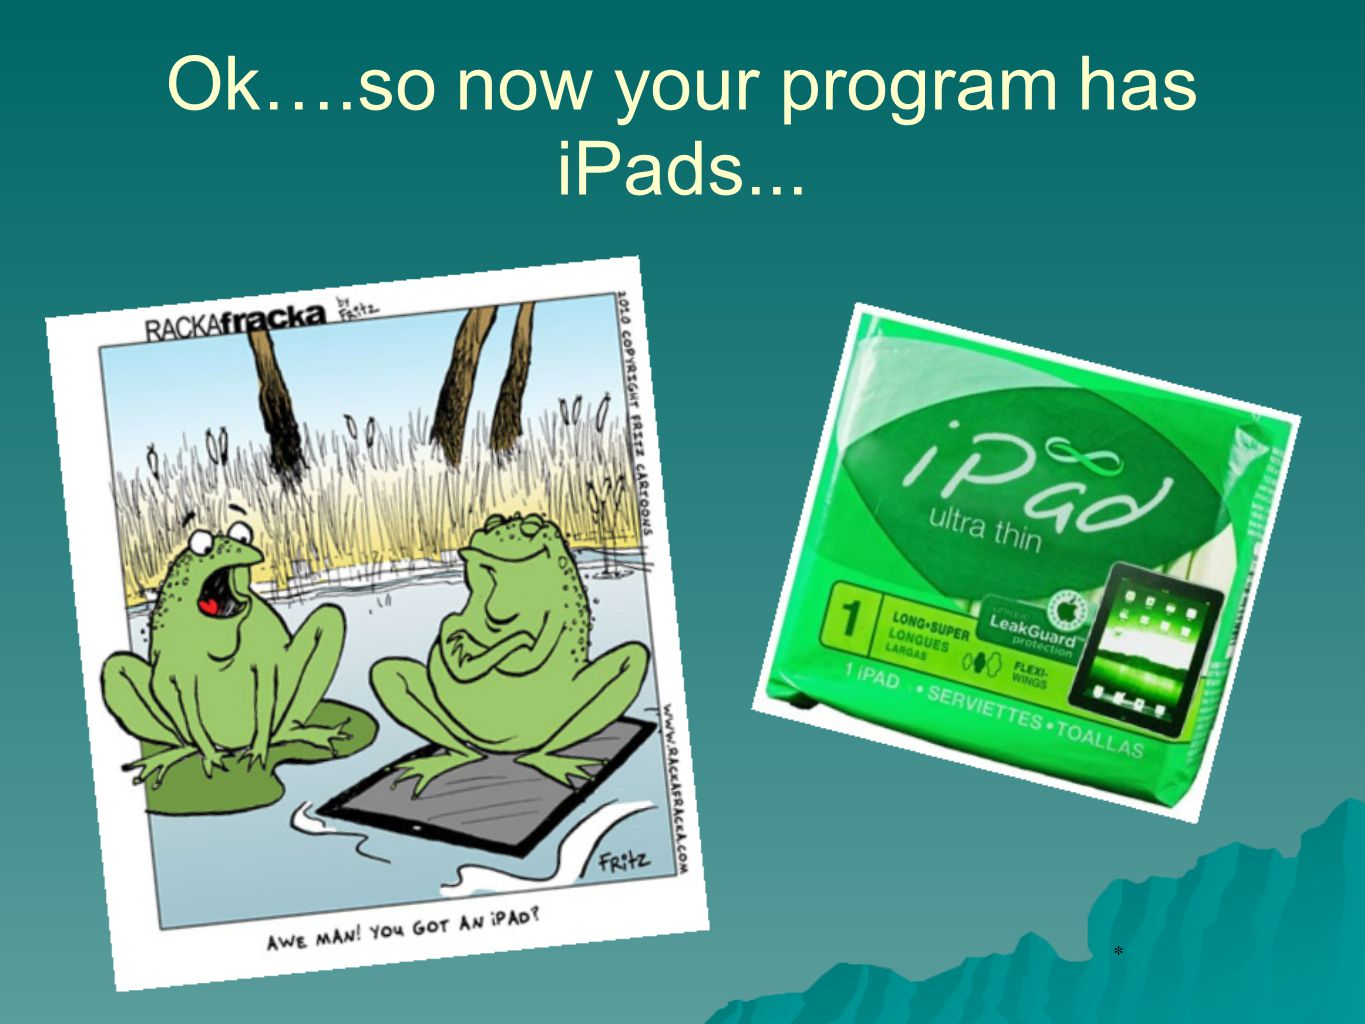 * Ok….so now your program has iPads...